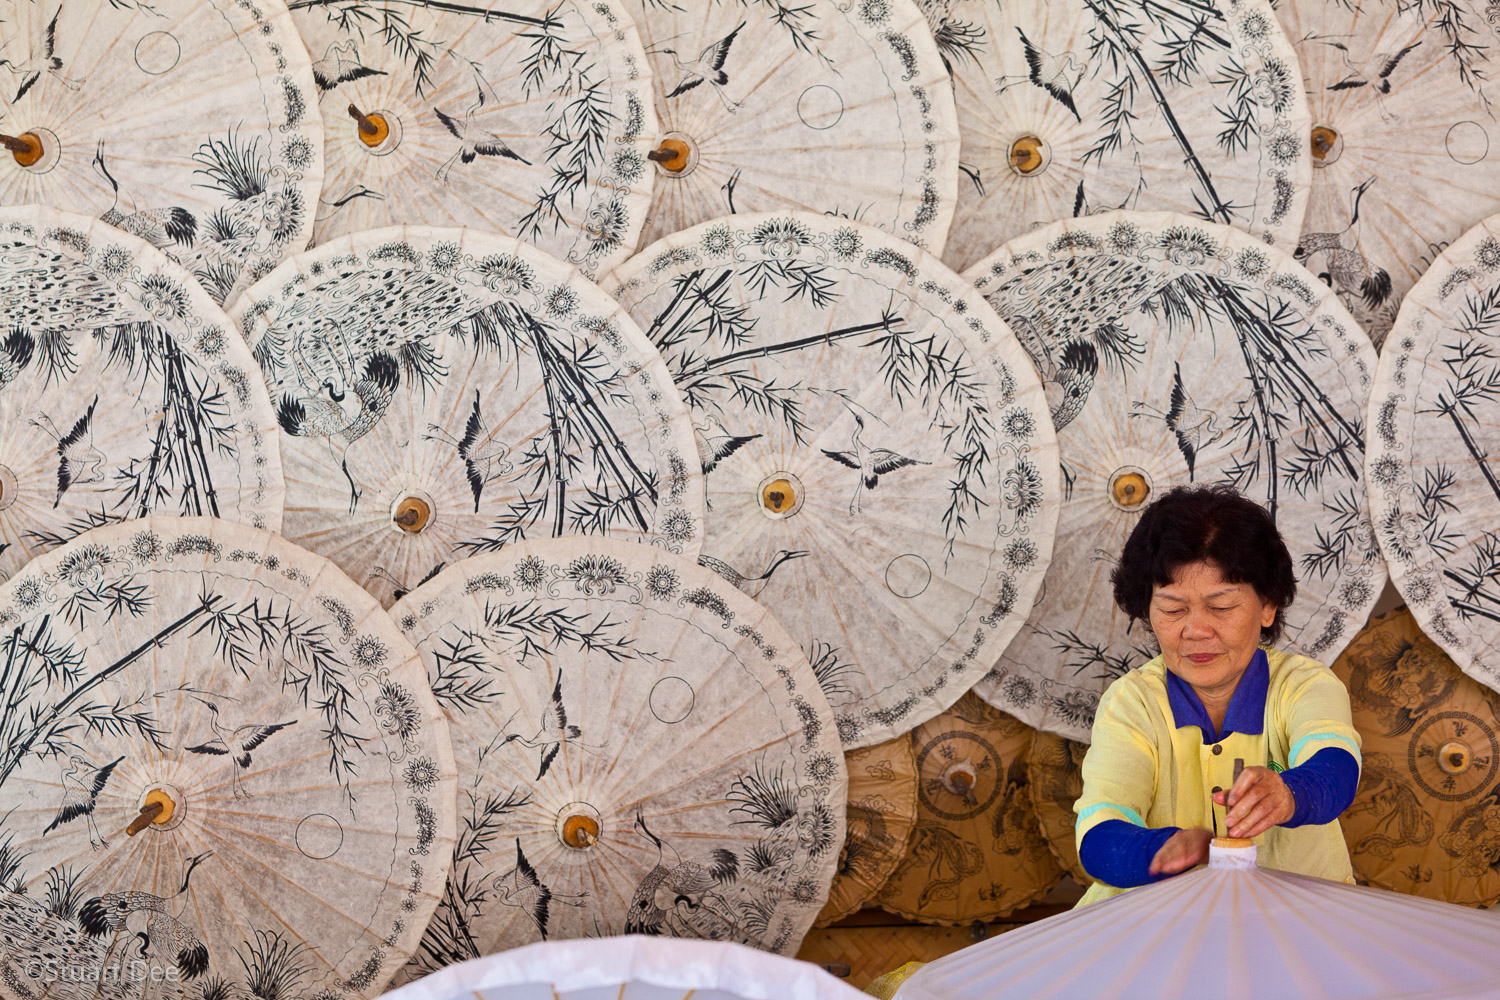 Woman making umbrellas, Chiang Mai, Thailand. Chiang Mai is known for umbrella-making.